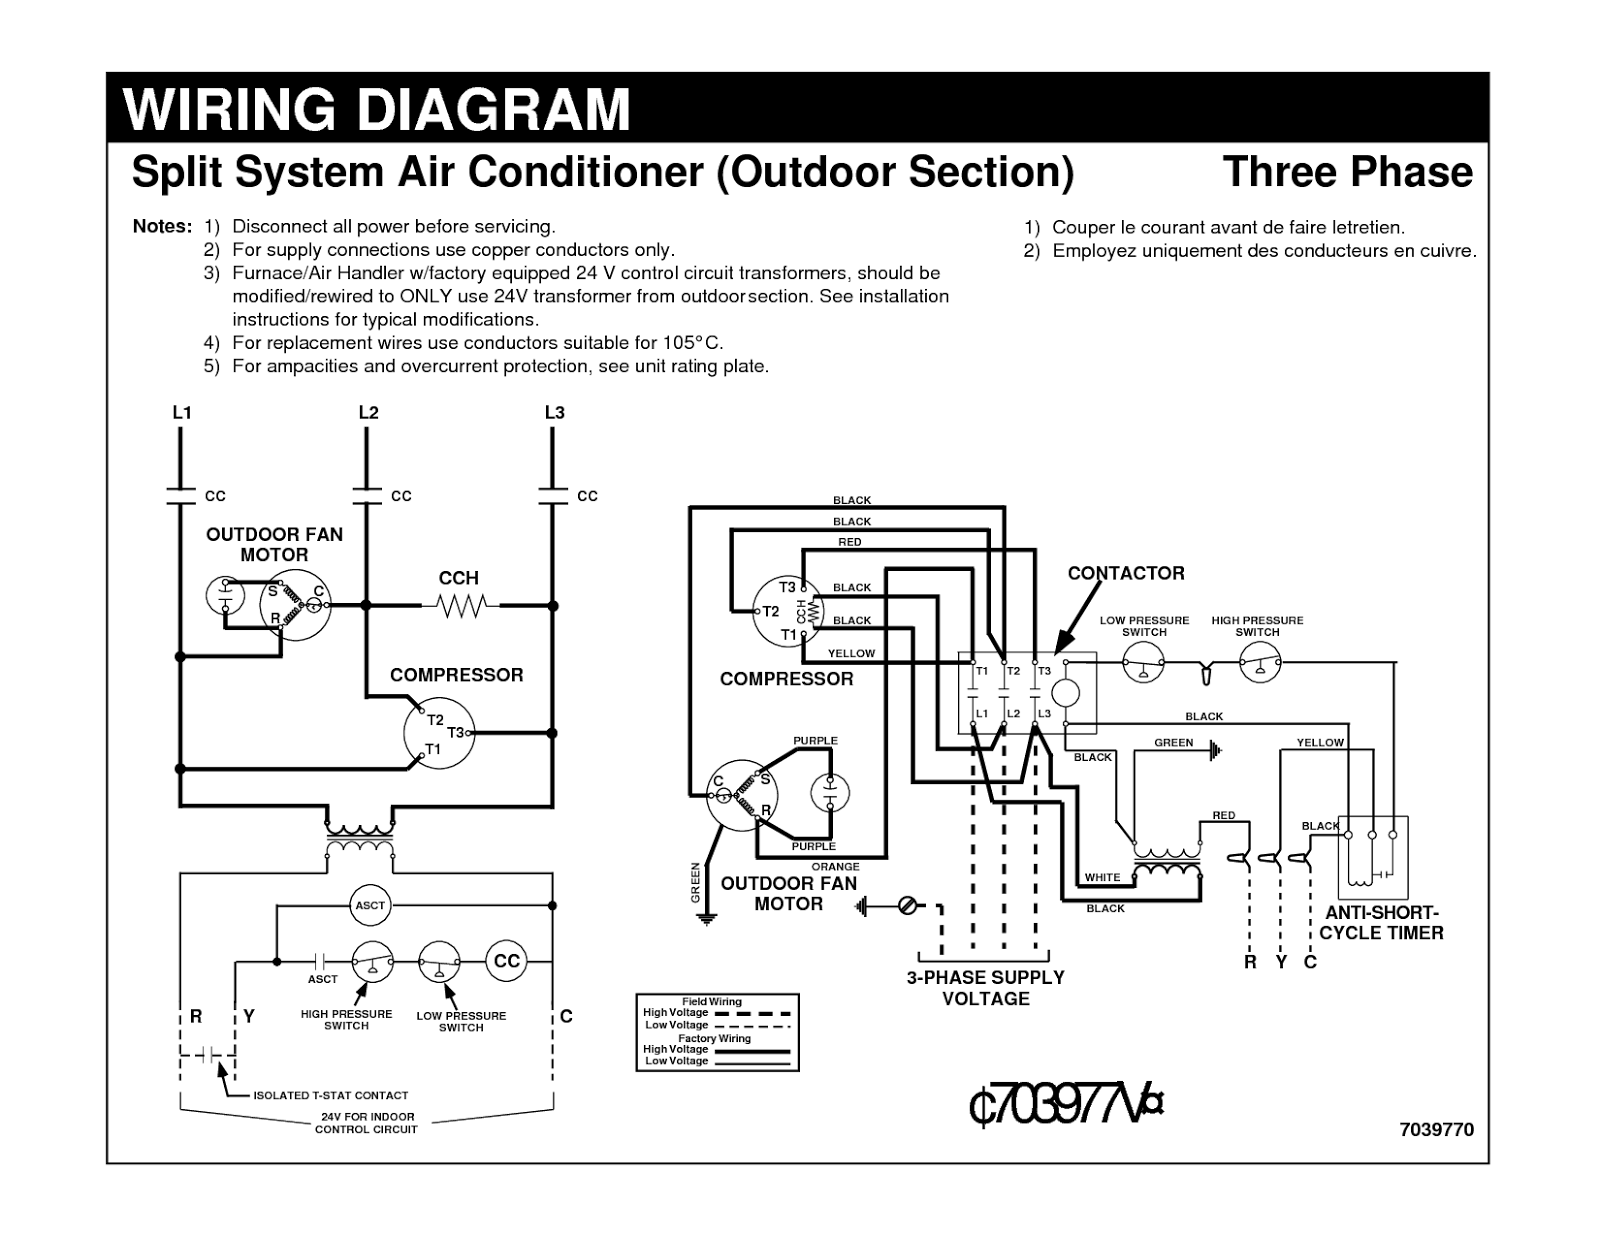 american standard compressor wiring diagram machine repair manual  2002 envoy a c compressor wiring diagram #6